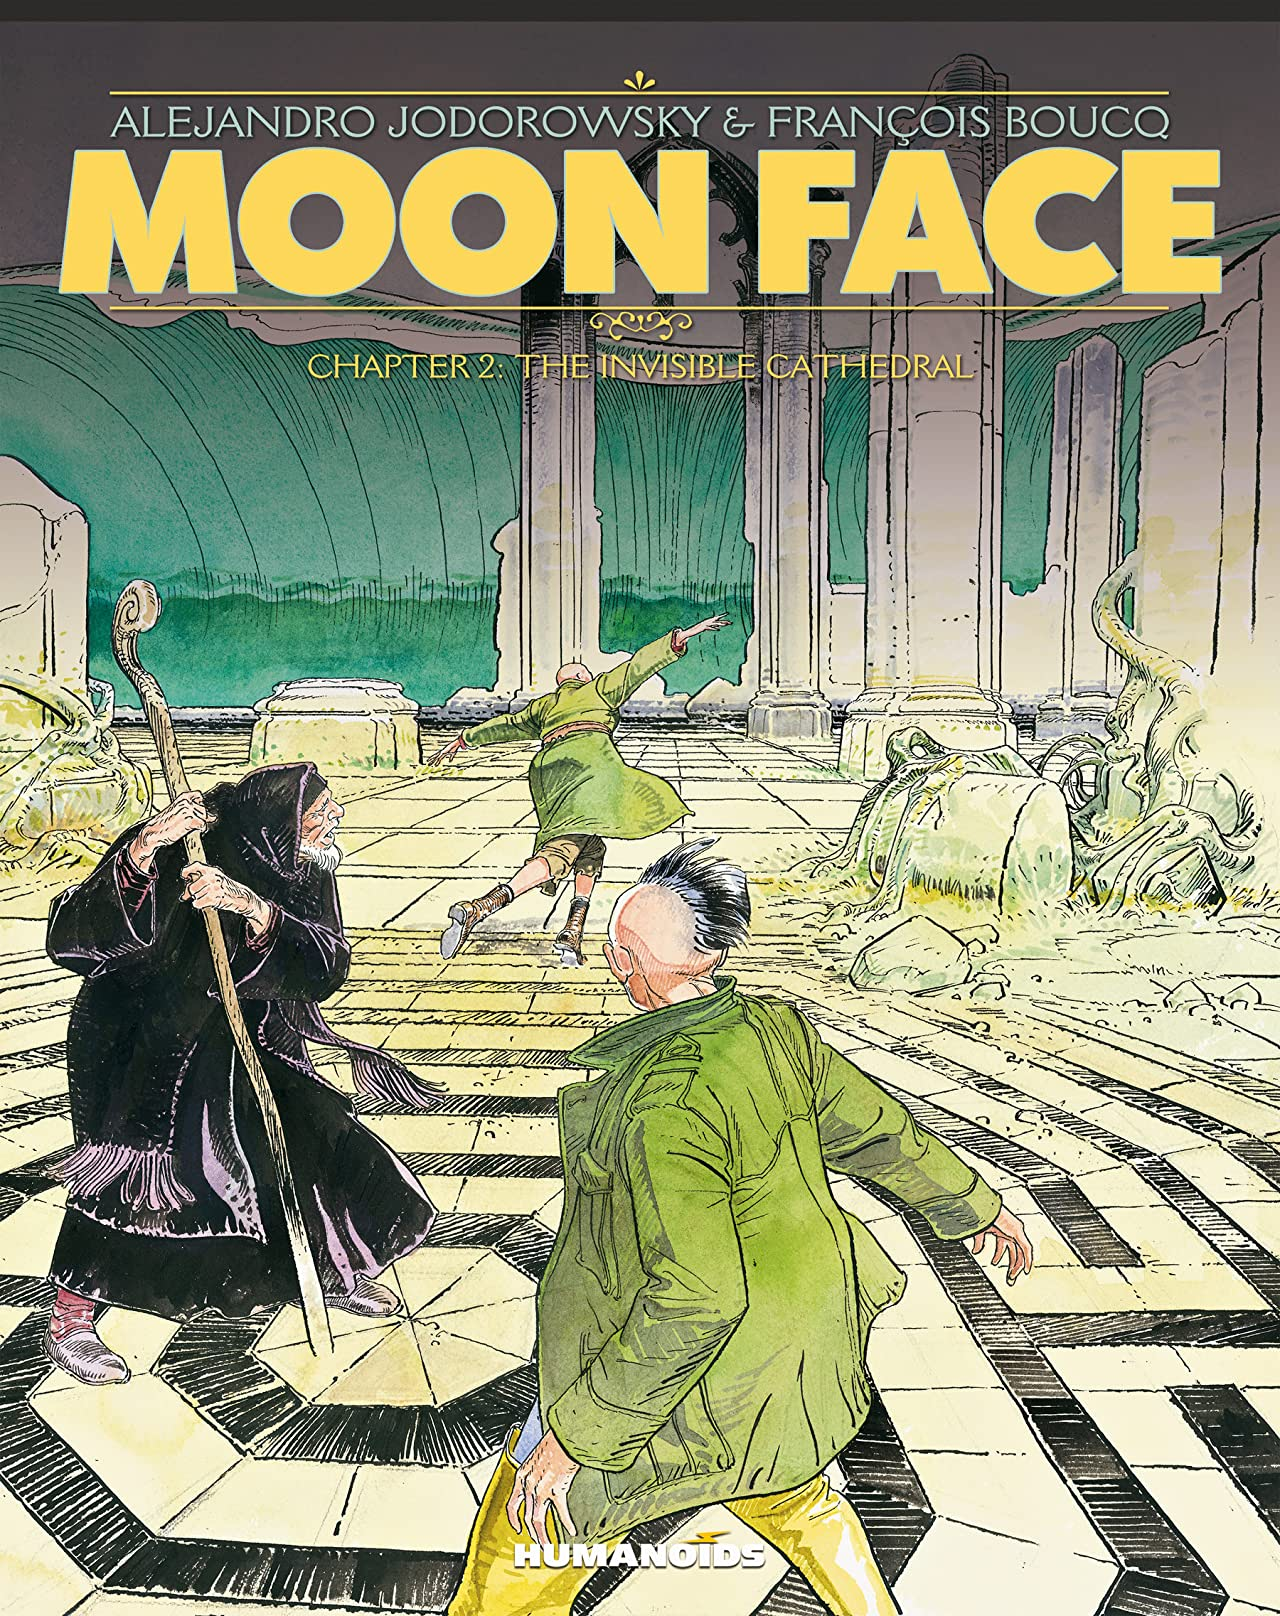 Moon Face Vol. 2: The Invisible Cathedral